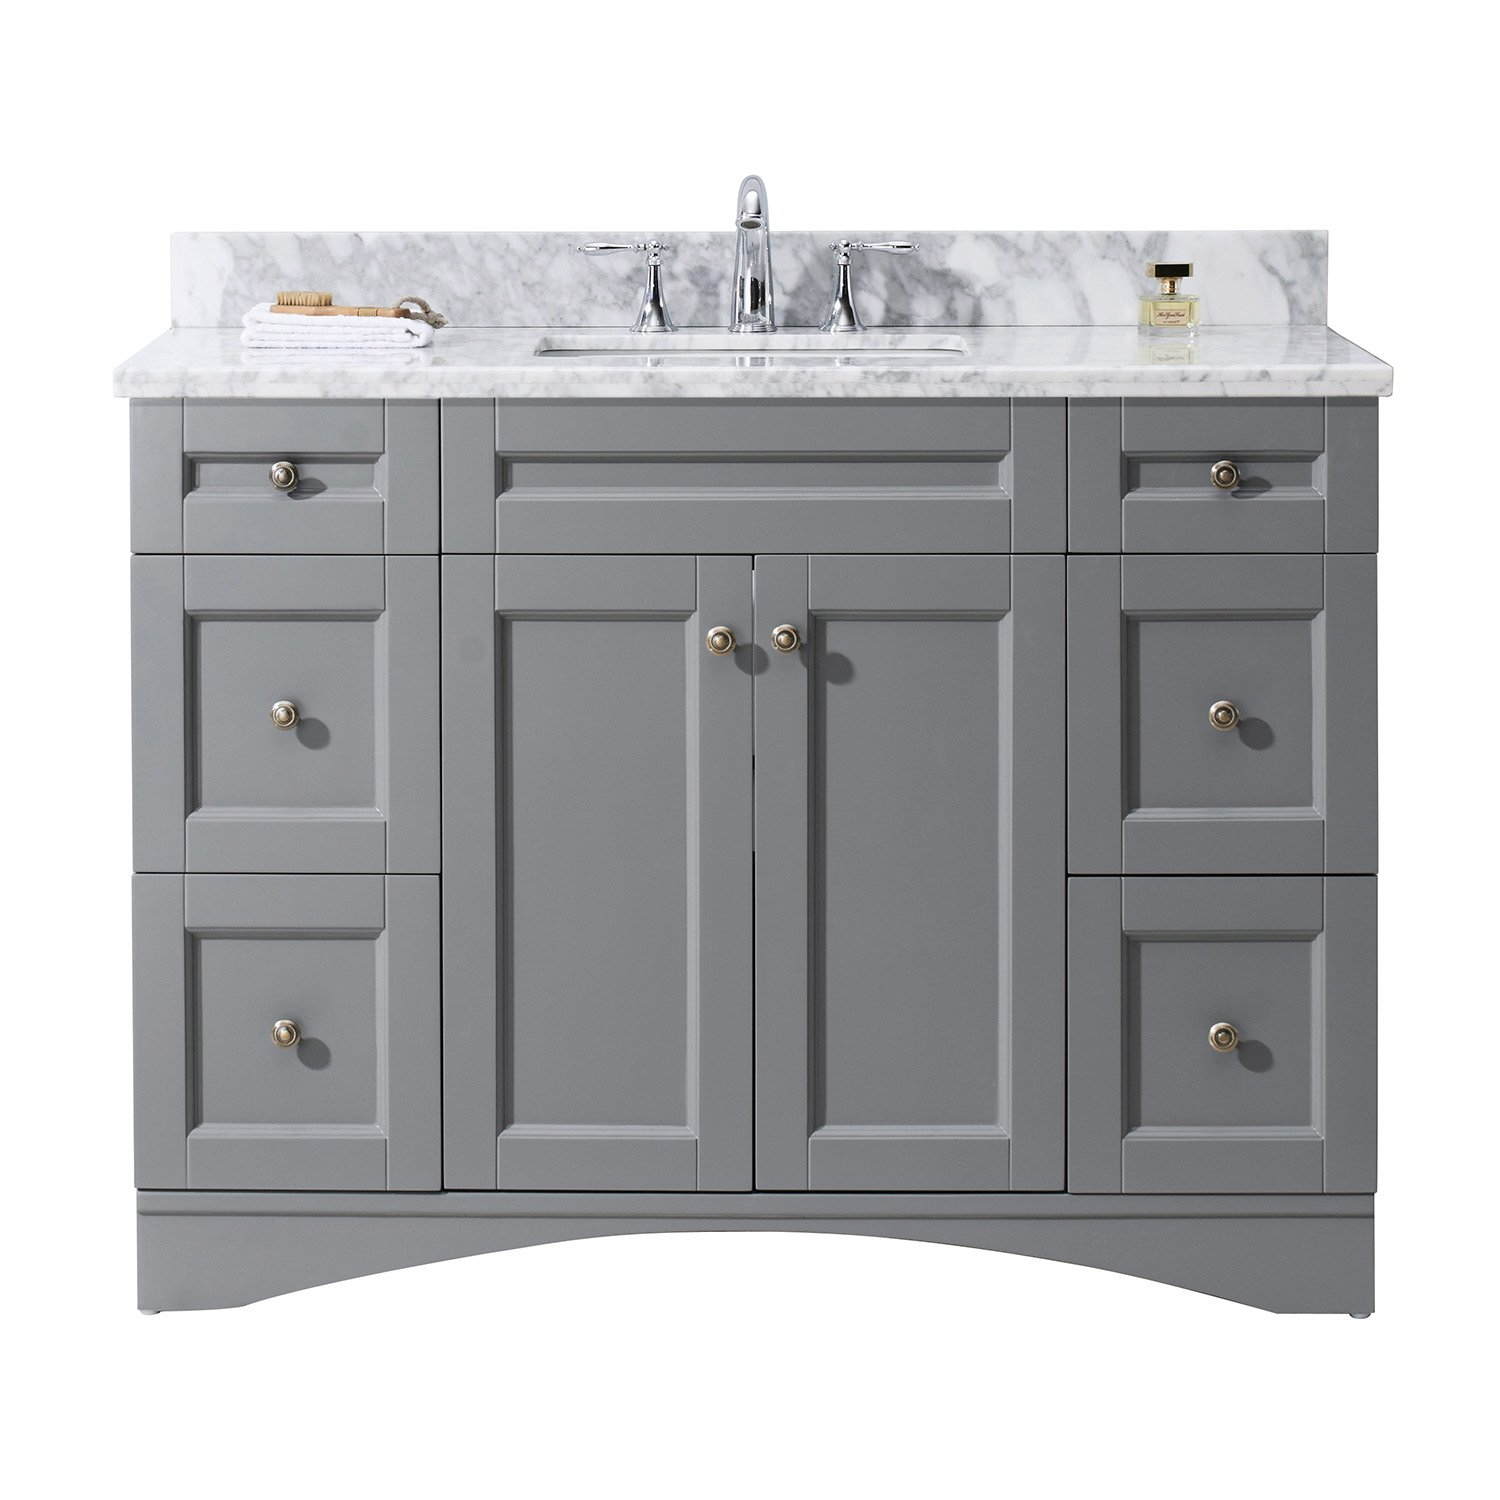 Virtu USA ES-32048-WMSQ-GR-NM Not Applicable Elise 48 inch single Bathroom Vanity In Grey with Marble Top & Square Sink